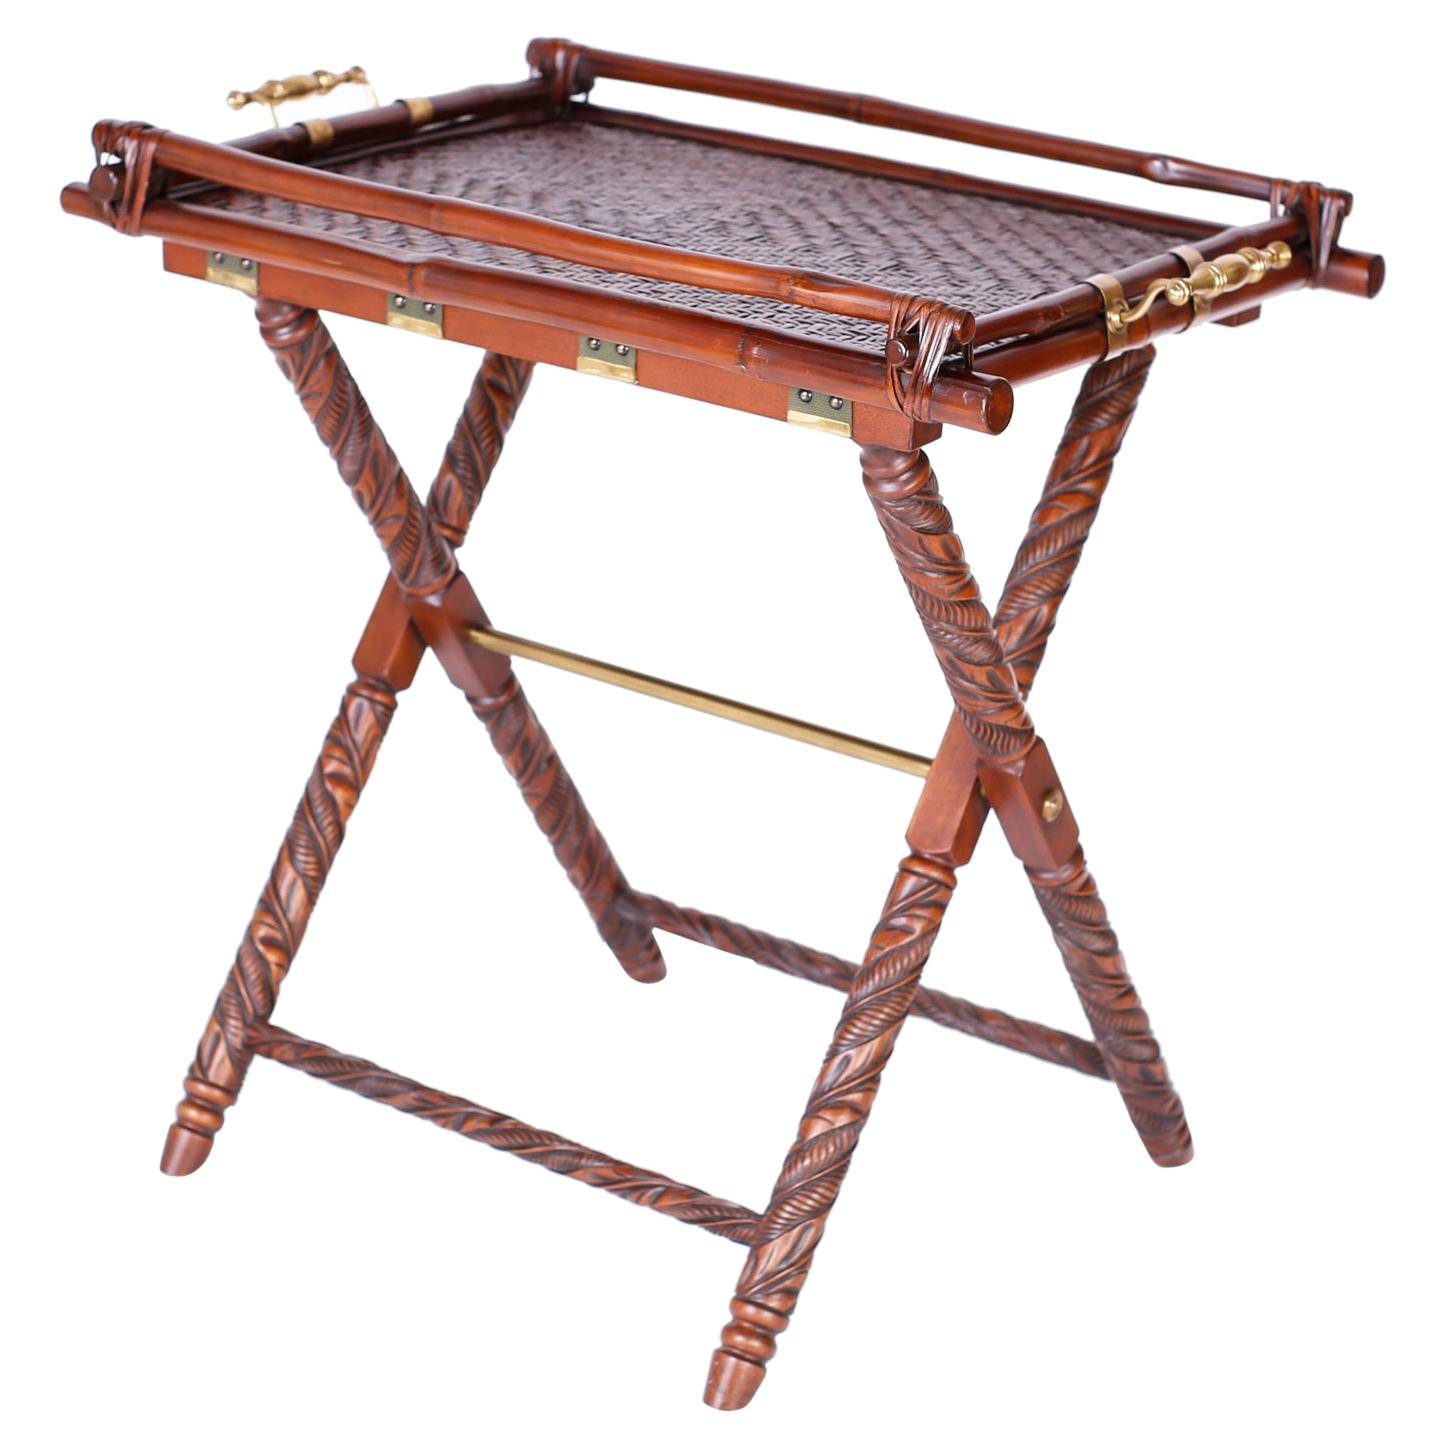 Serving Tray on a Folding Stand